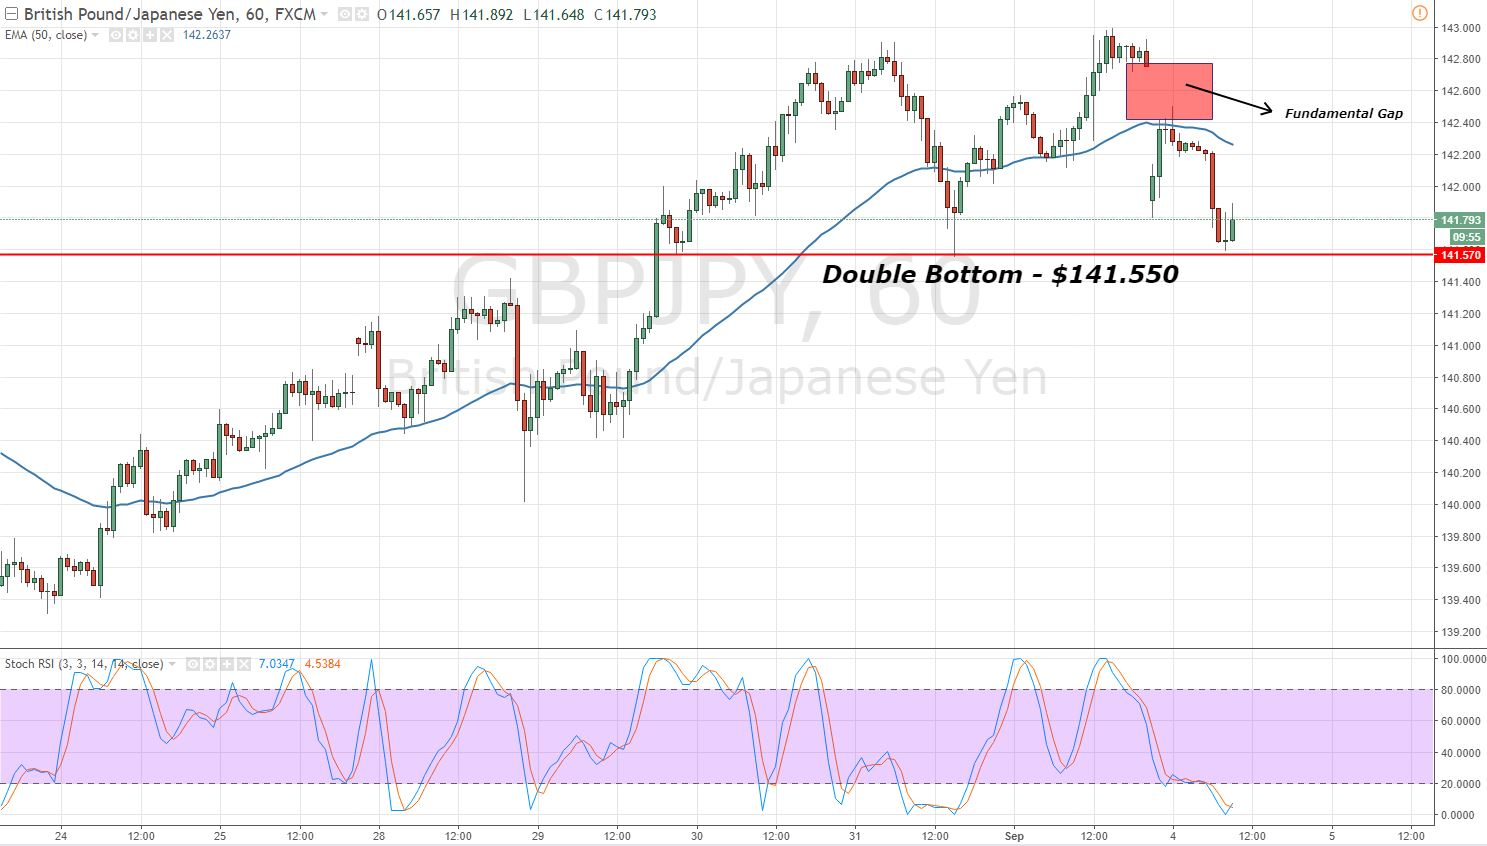 GBPJPY - Hourly Chart - Double Bottom